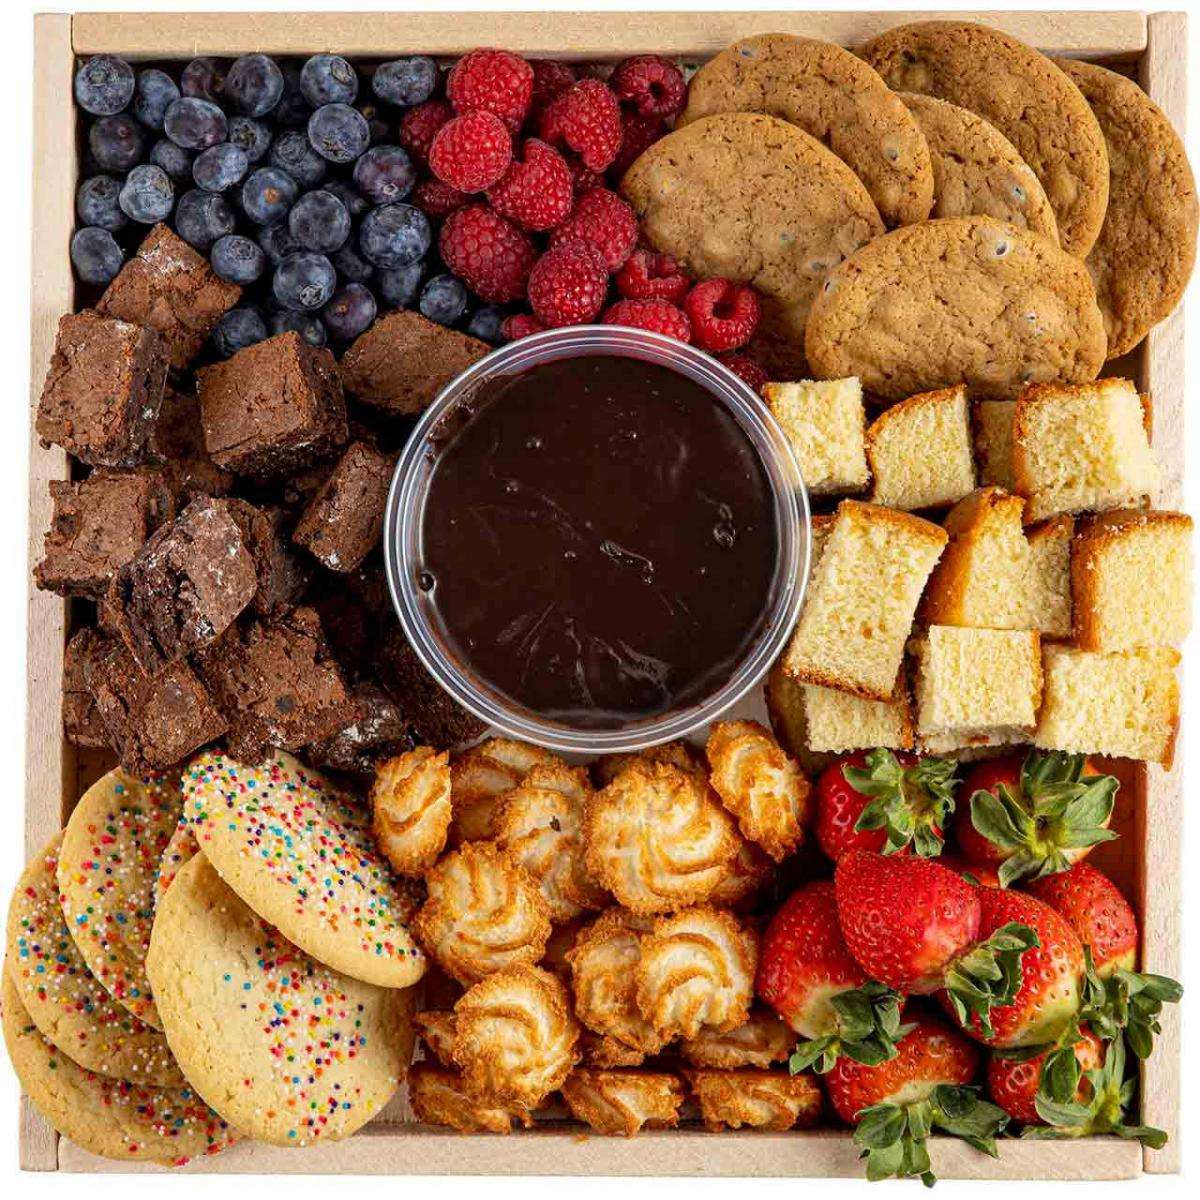 Tray of brownies, cookies, fruit and chocolate fondue